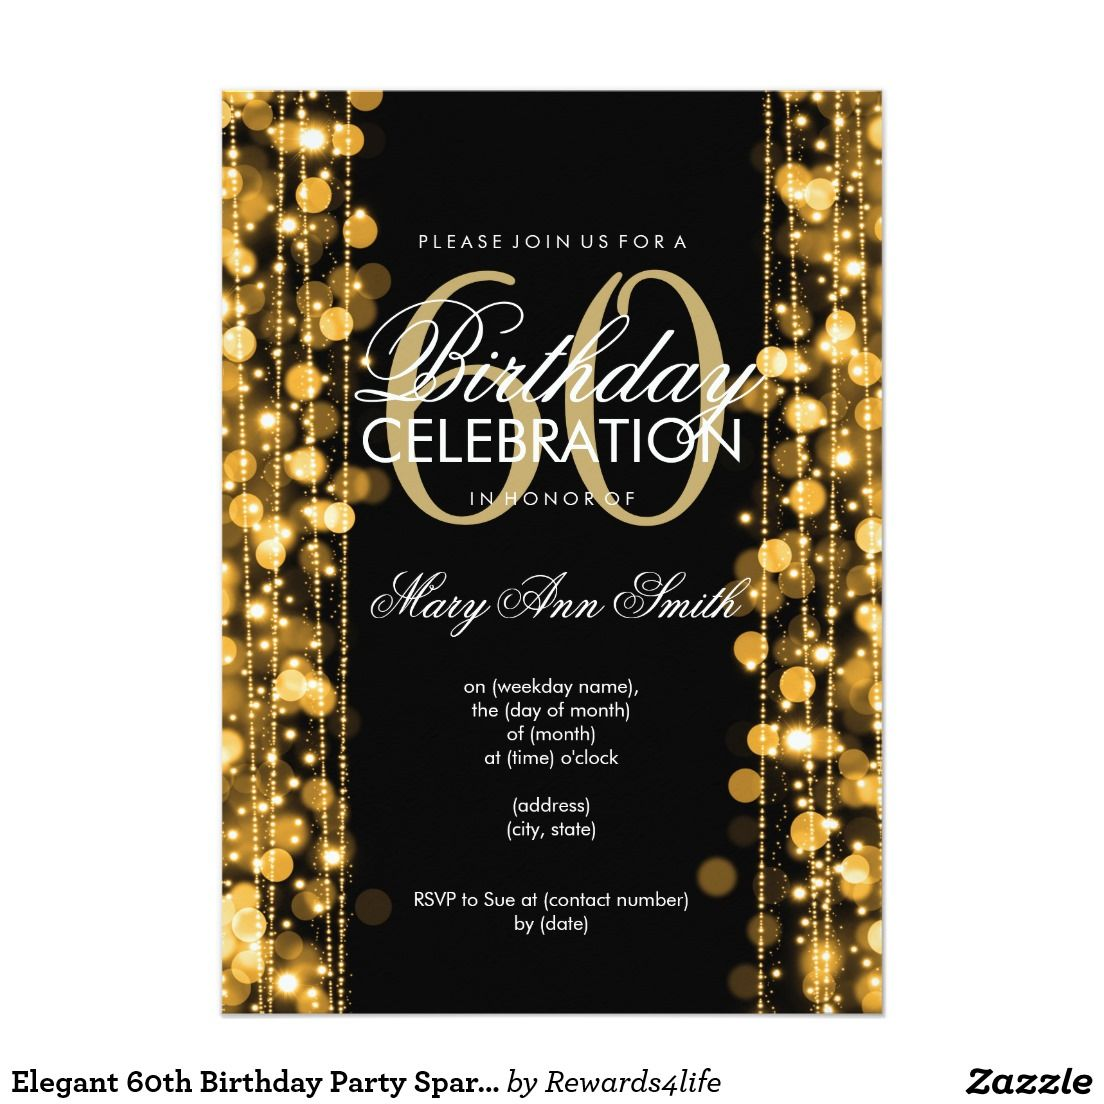 Elegant 60th Birthday Party Sparkles Gold Invitation Zazzle Com